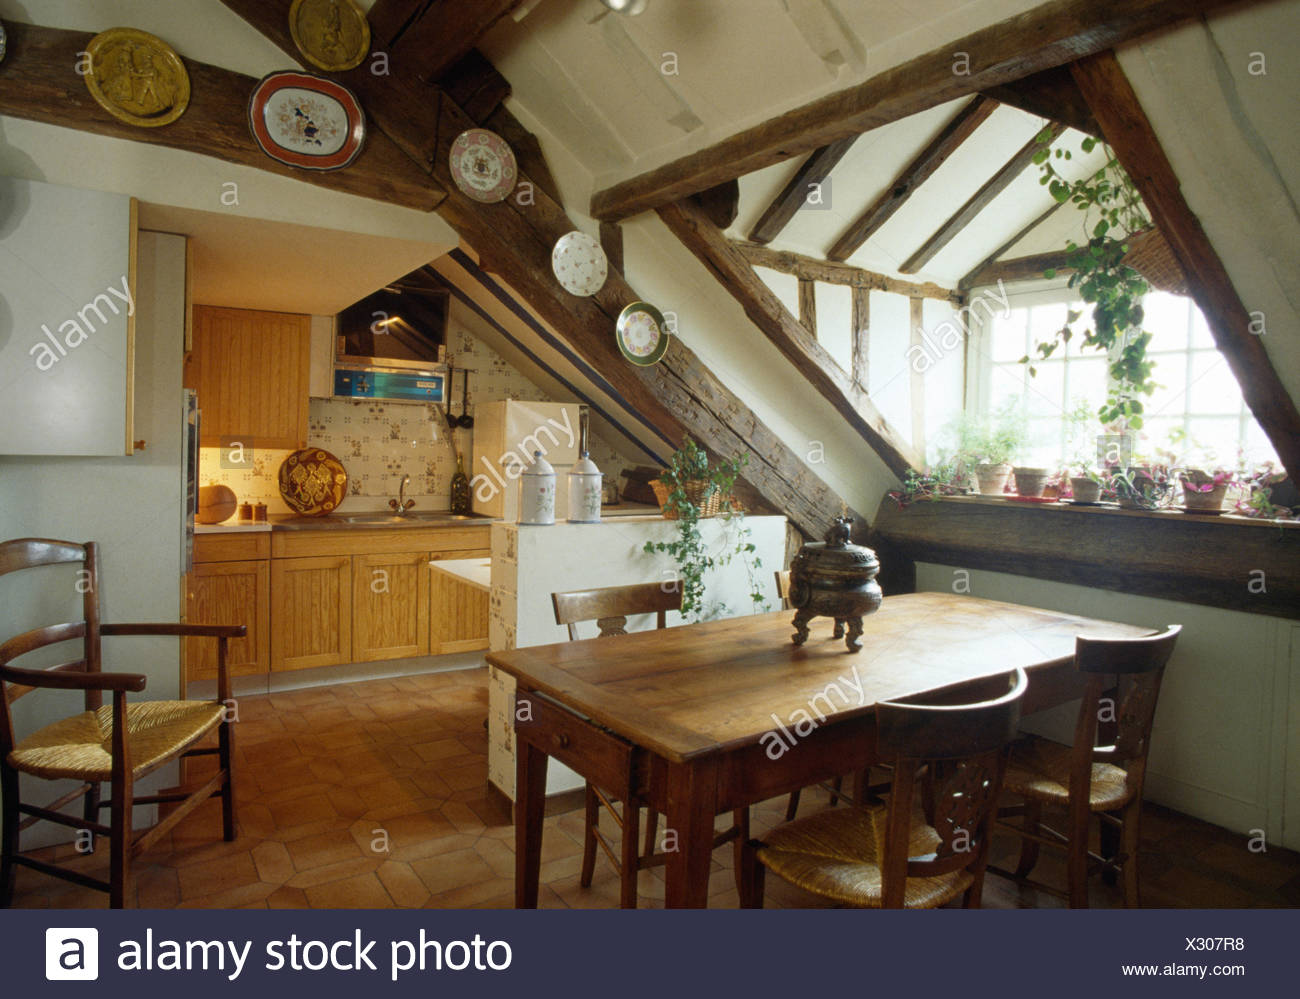 Dachboden Kleine Küche Attic Stockfotos And Attic Bilder Alamy